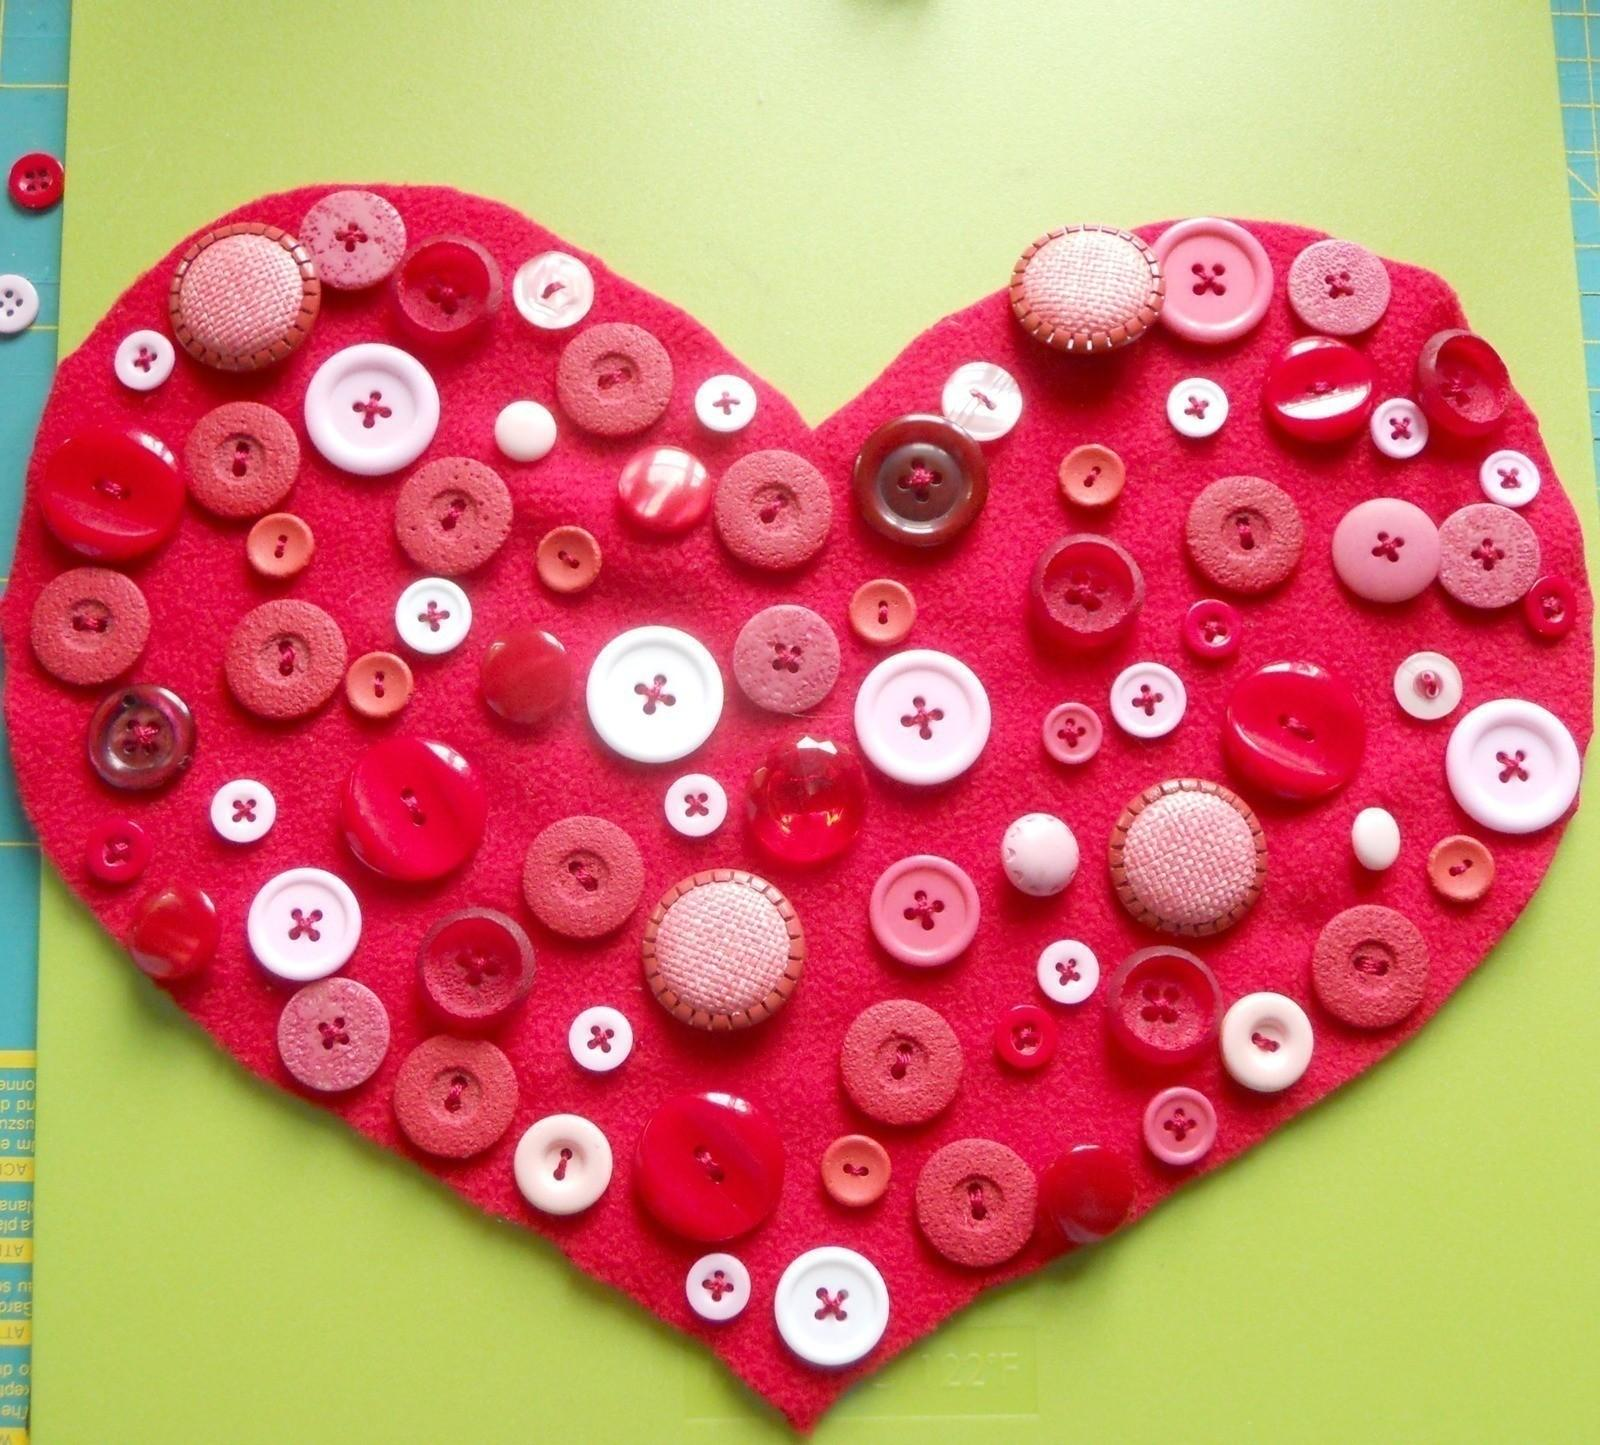 Diy Buttons Heart Pillow Make Stitched Cushion